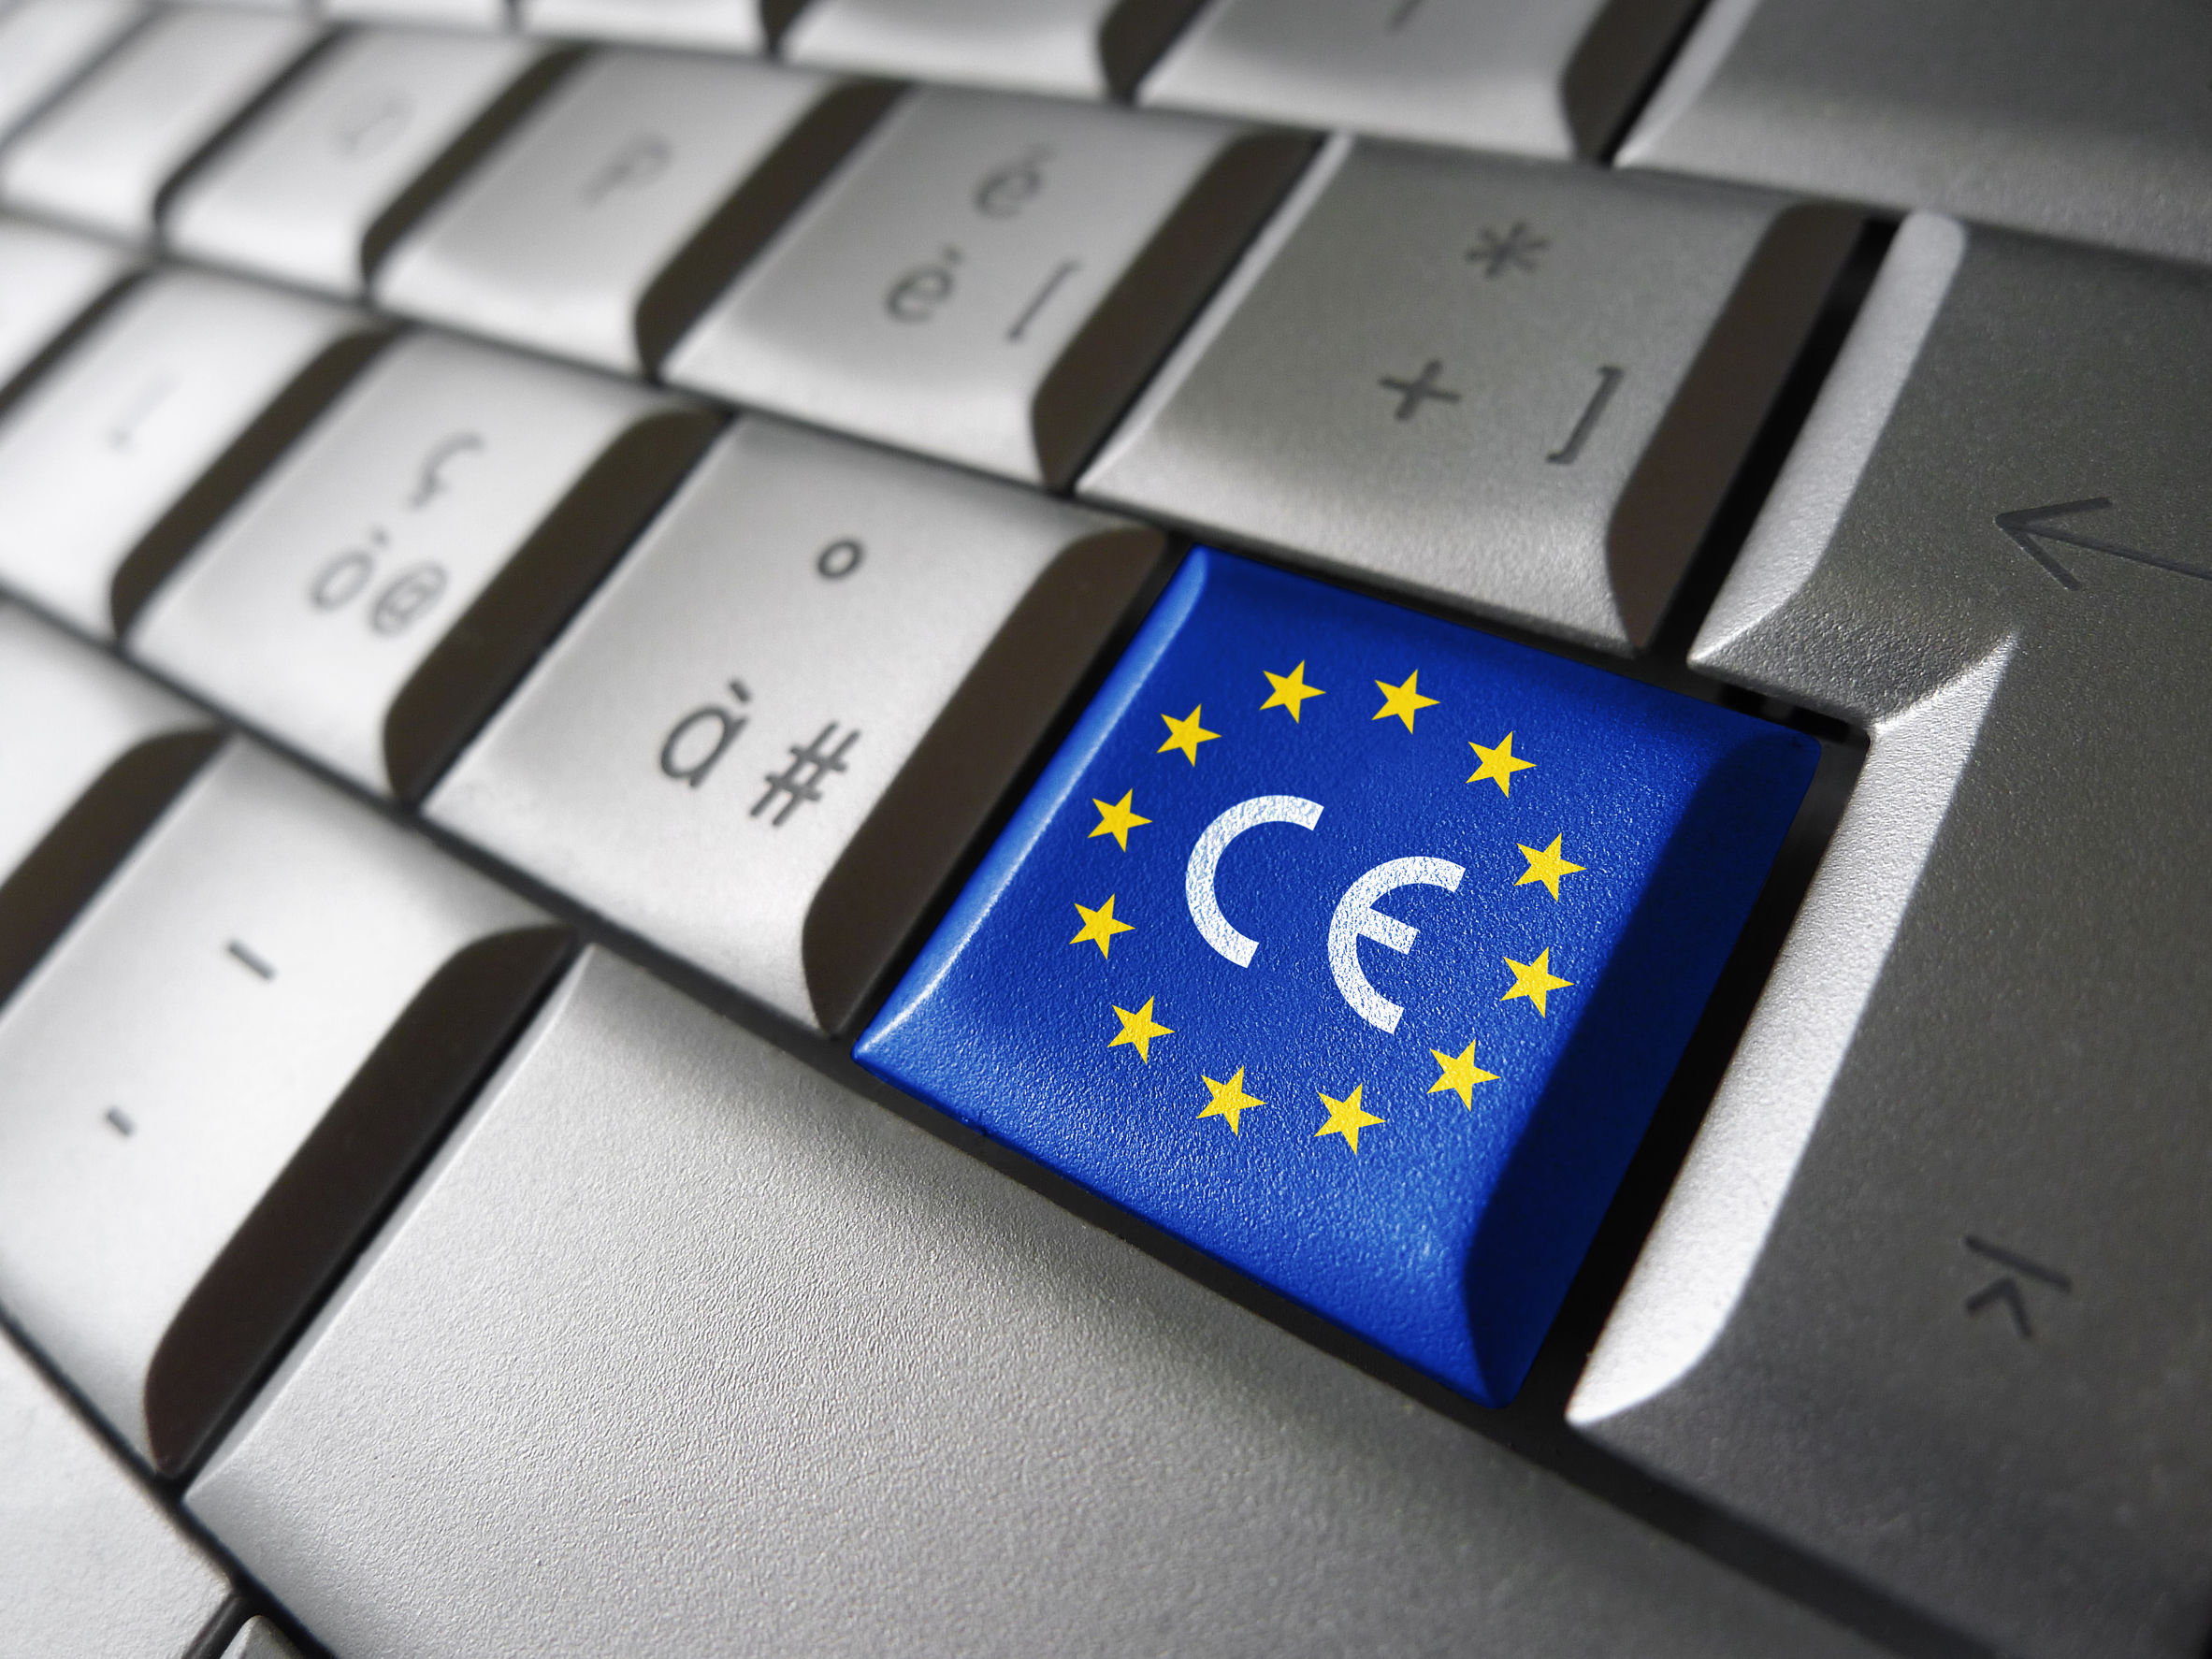 Product safety and IoT: European Commission orders recall over data security failings